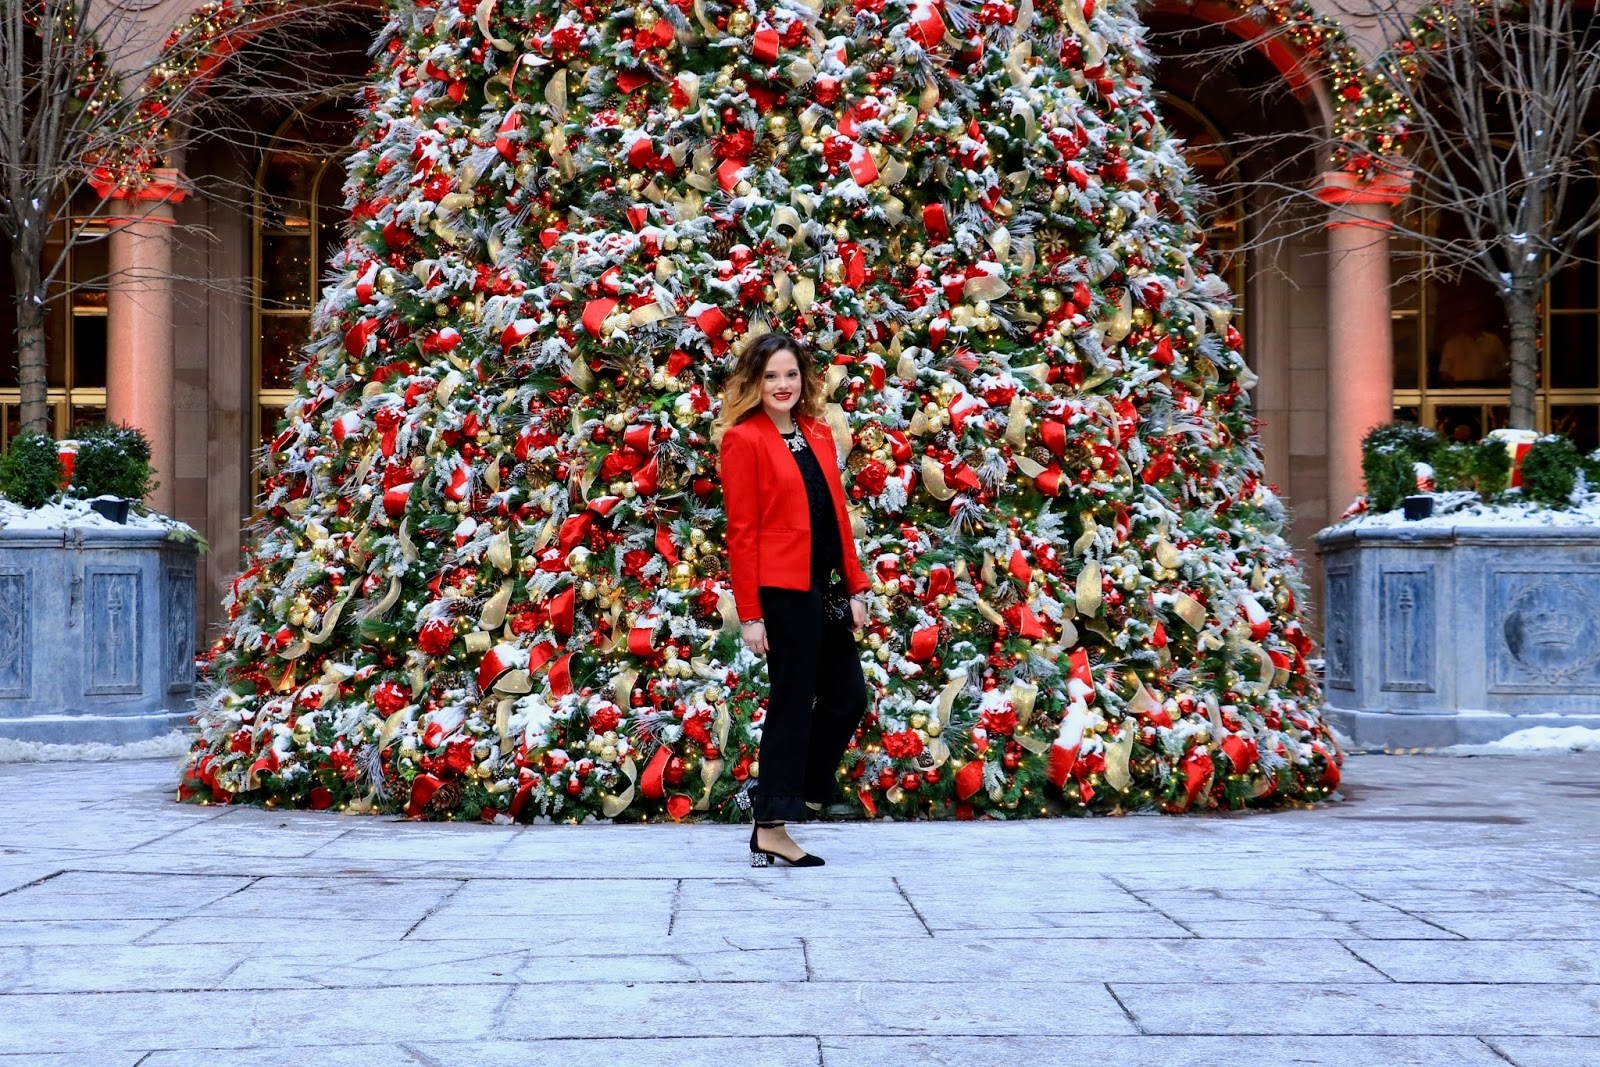 Nyc fashion blogger Kathleen Harper in front of the Lotte Palace Christmas tree